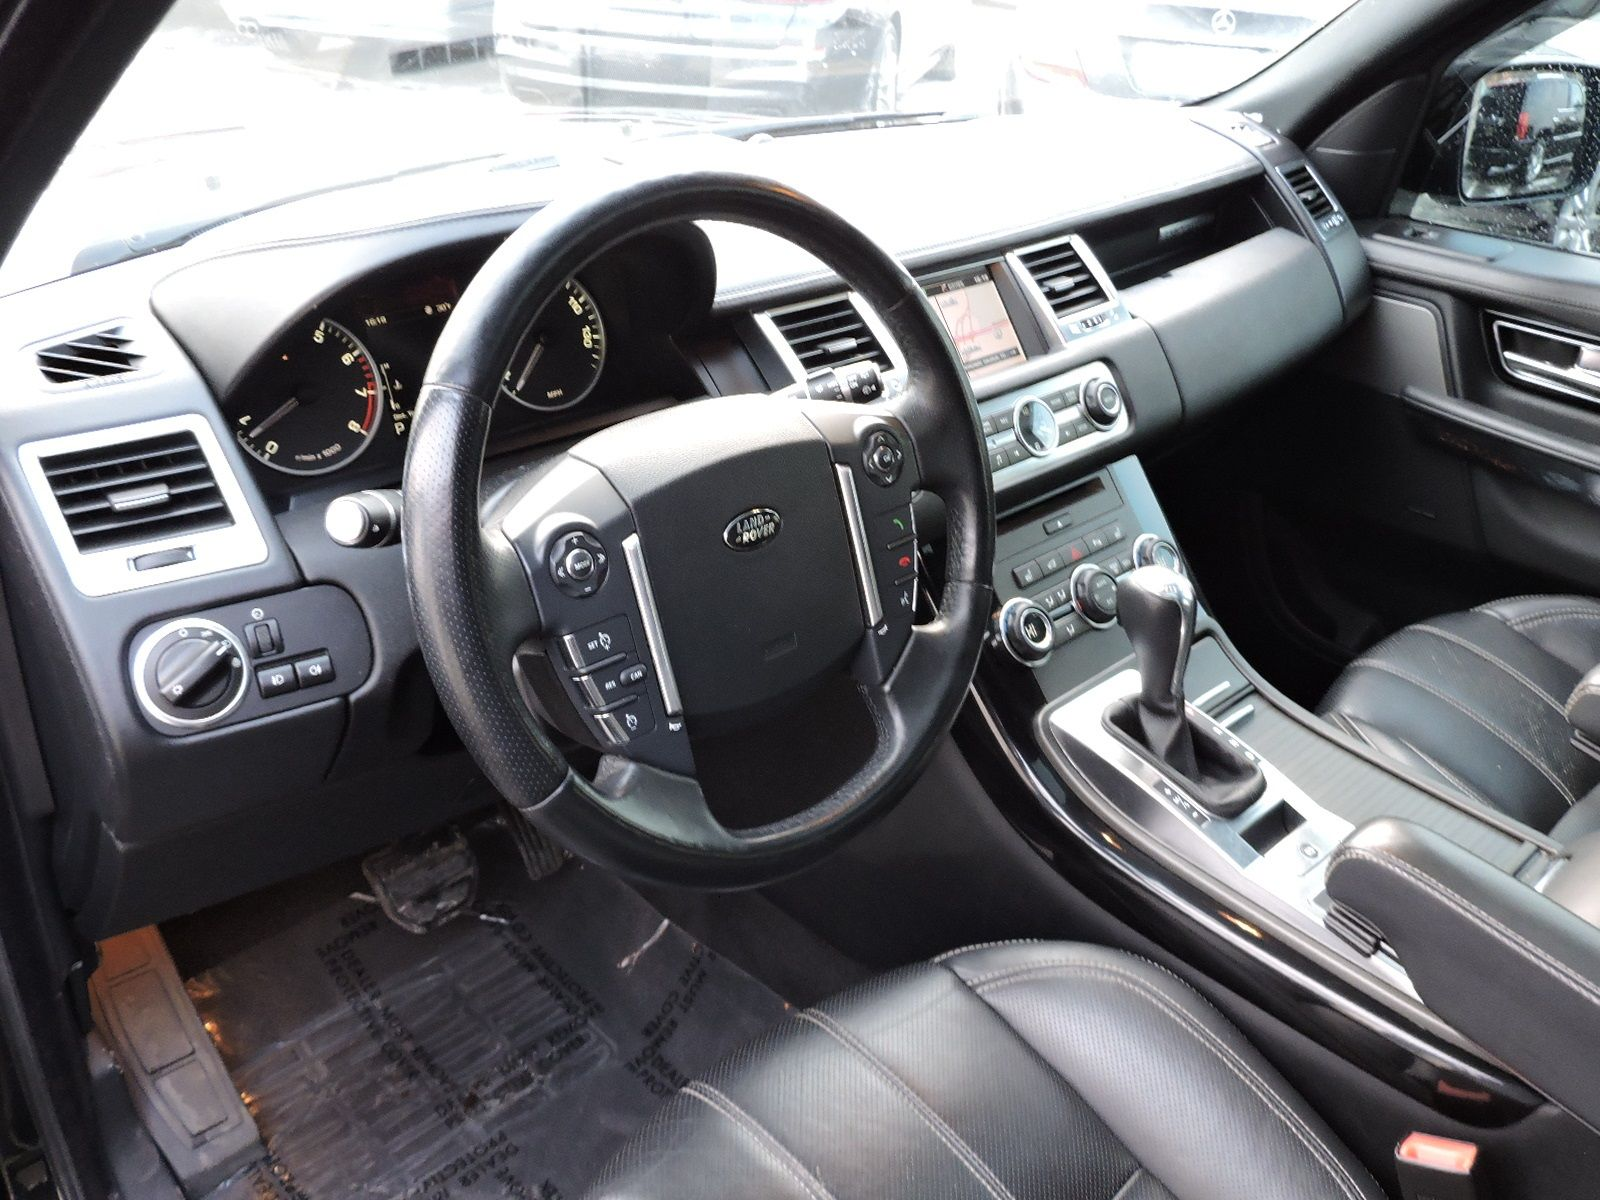 2013 Land Rover Range Rover Sport HSE - LUX - Navigation